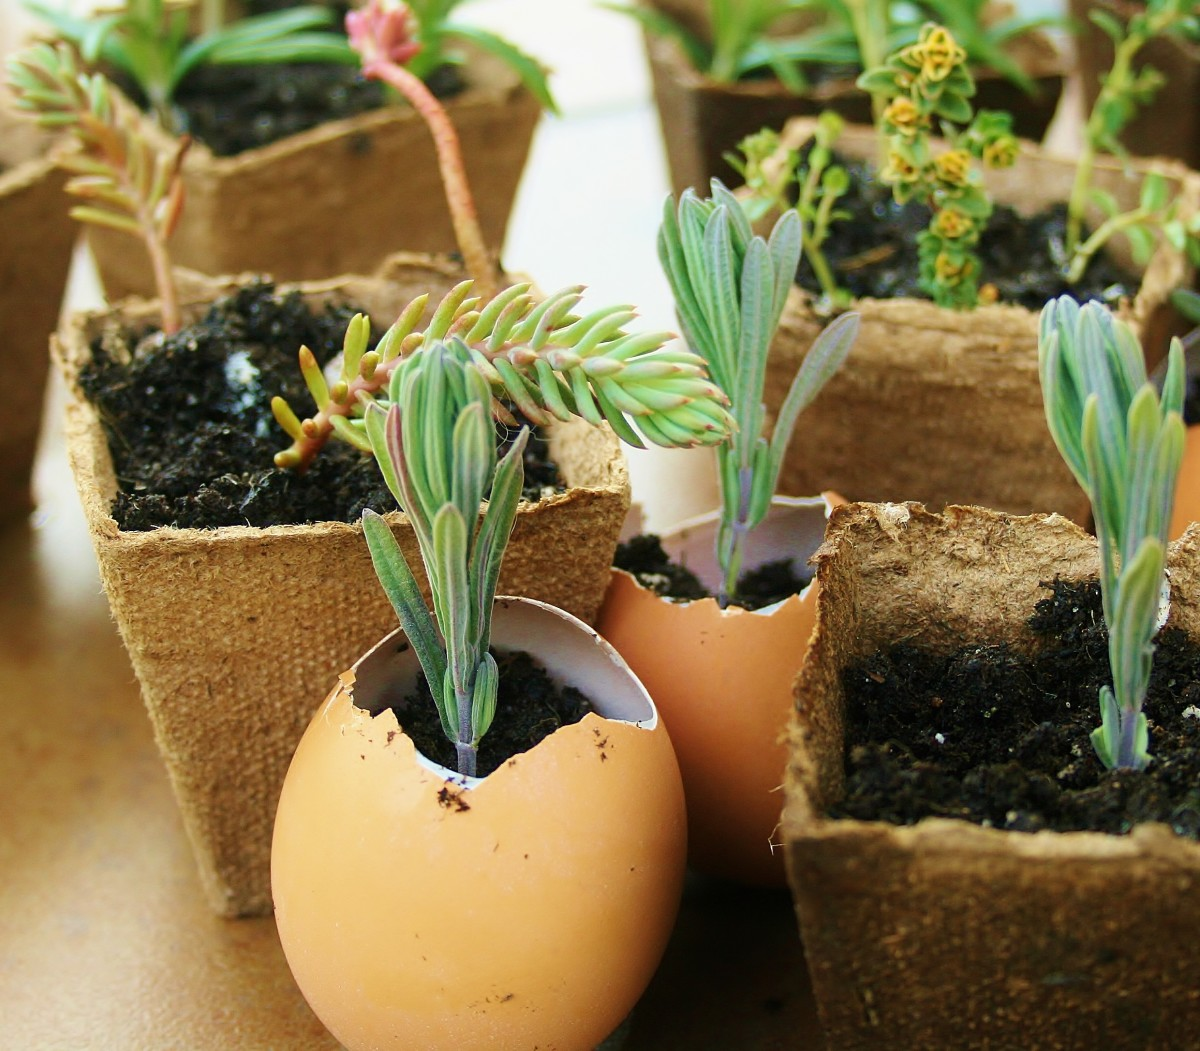 Reusing old soil has risks, but you can limit them by following a few basic guidelines.